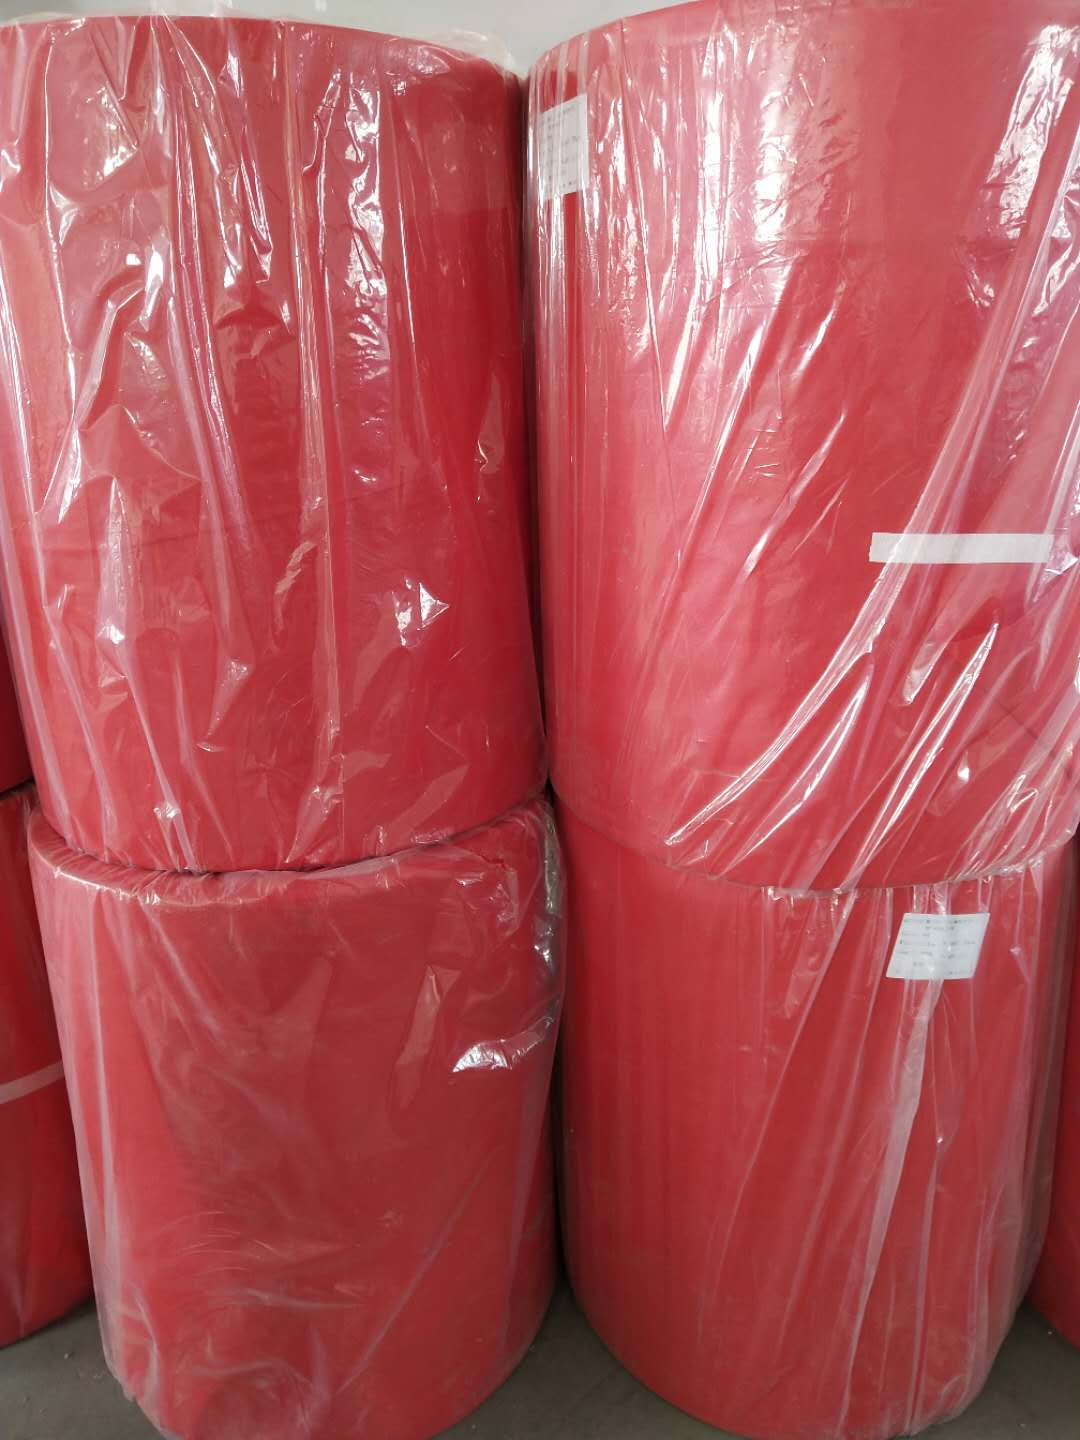 Polypropylene Nonwoven Fabric Bag Materials Raw PP Spunbond Non-woven Fabric Recycled